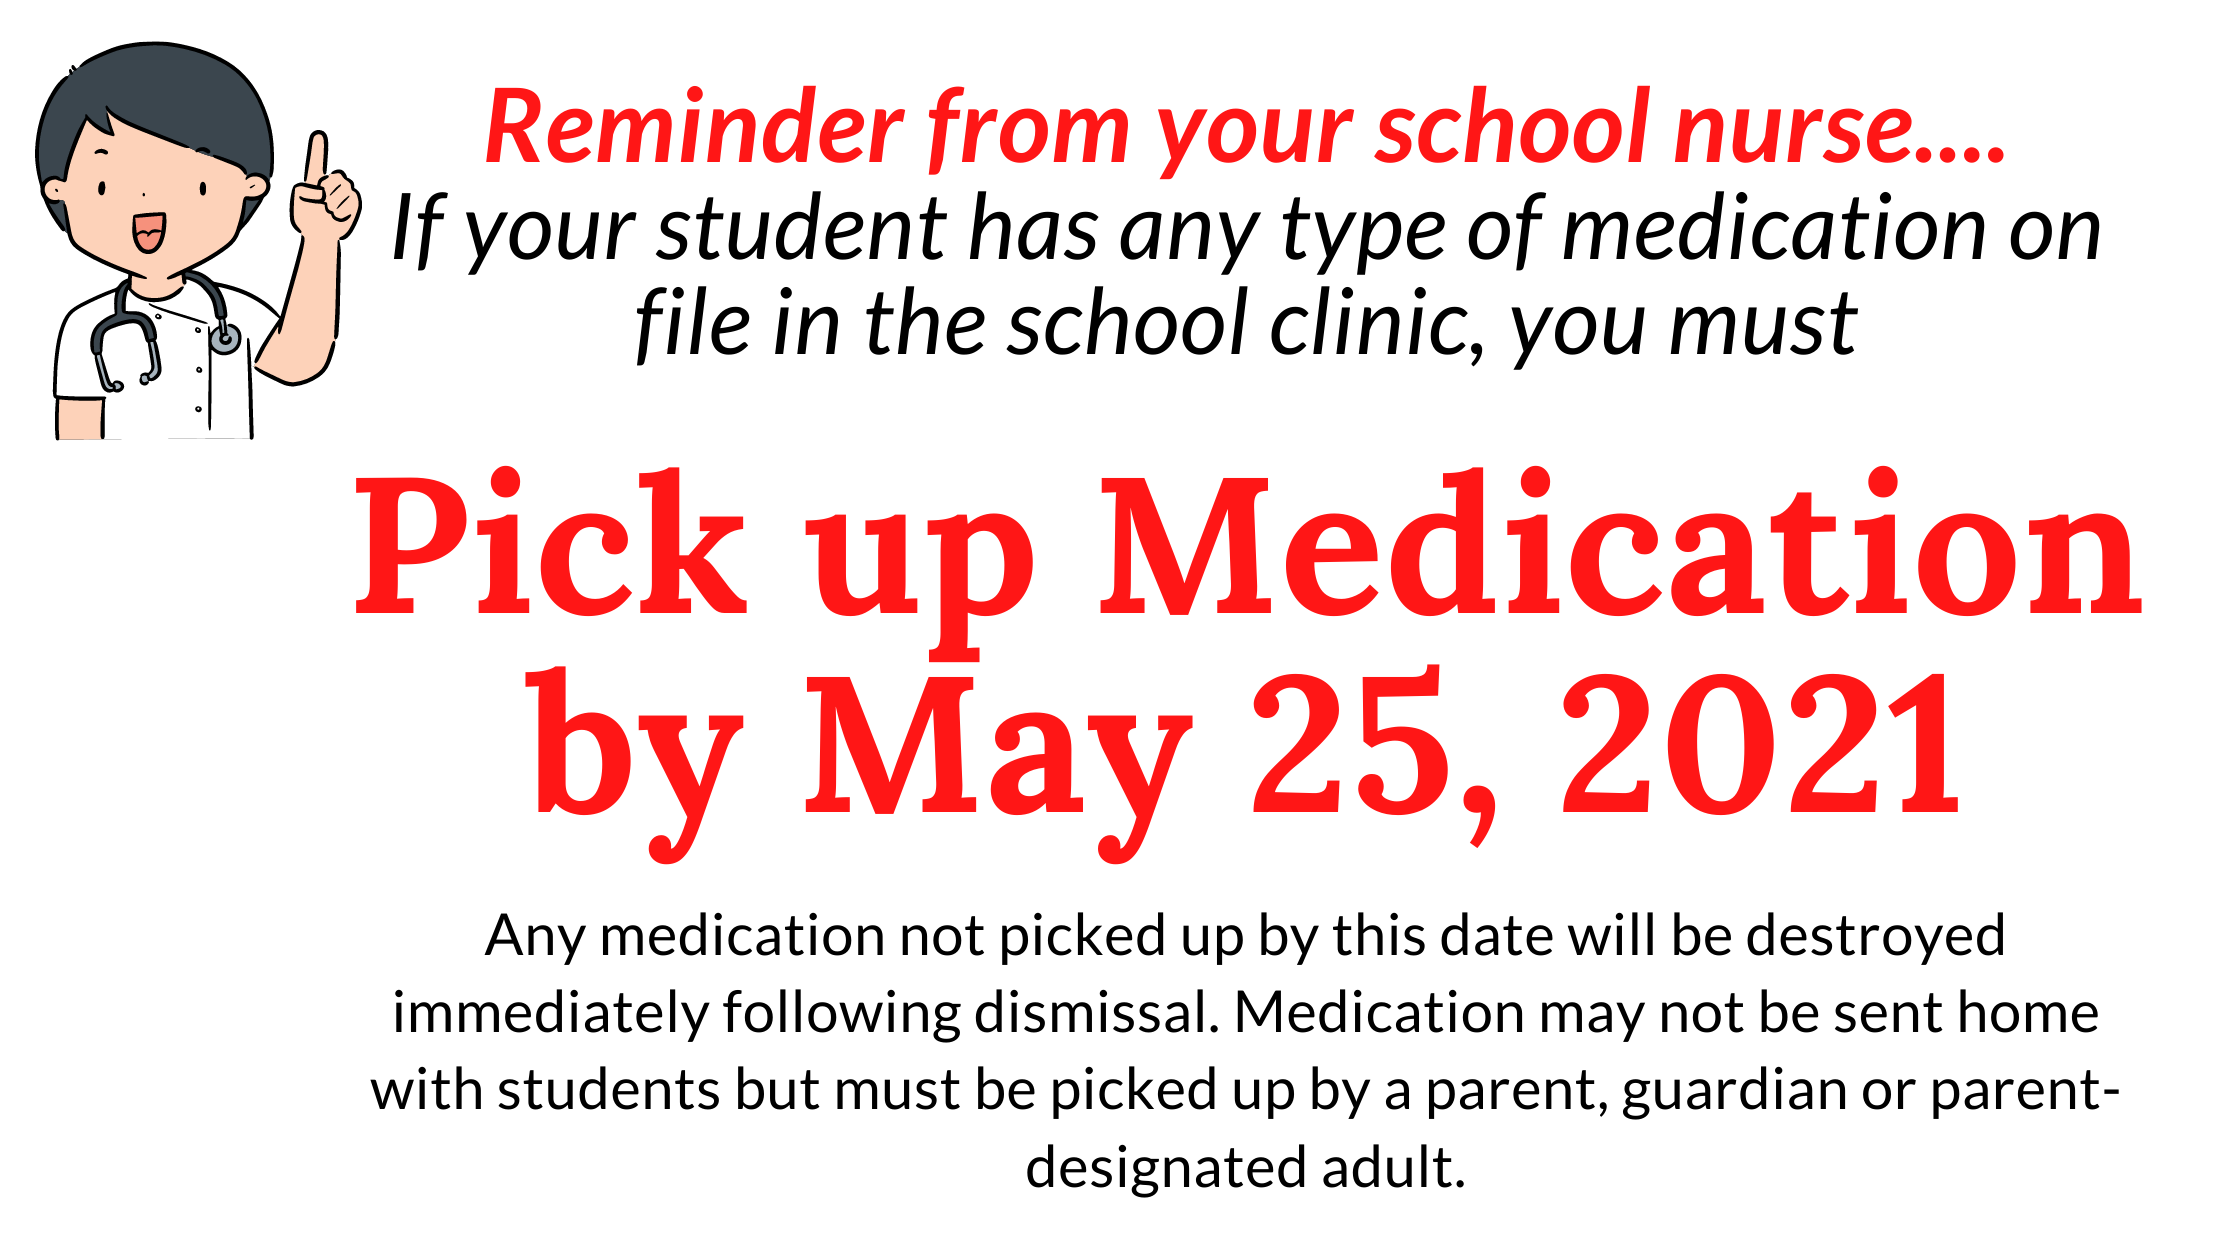 Reminder from your school nurse